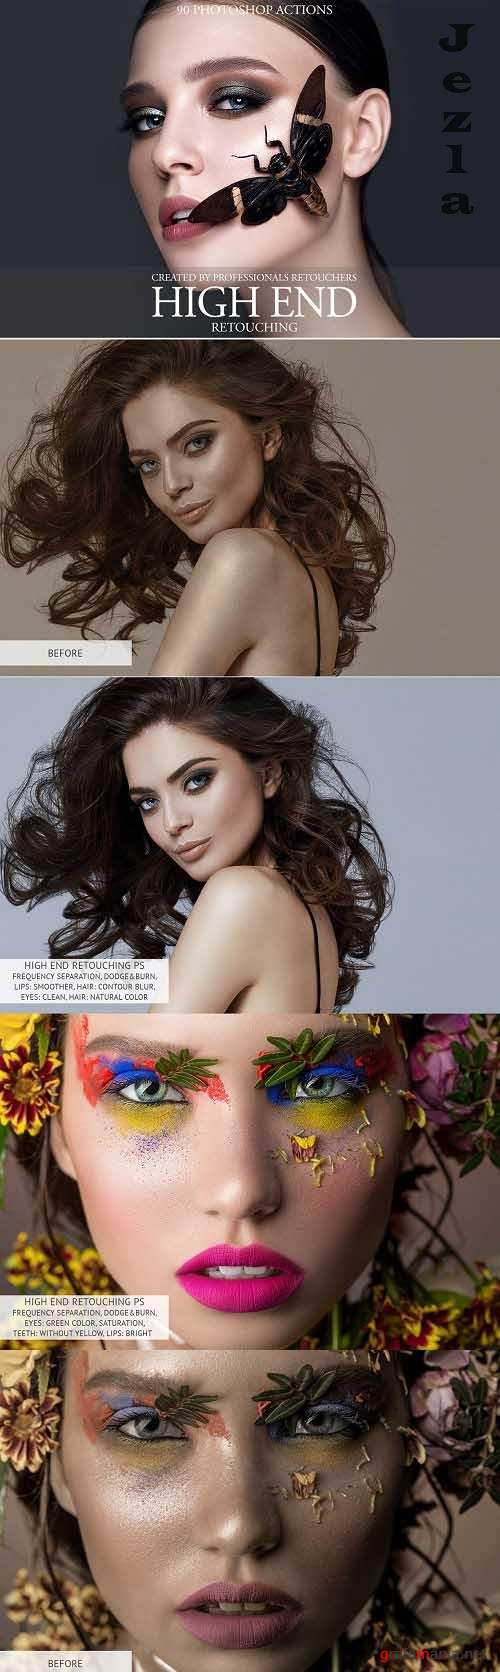 High End Retouching Photoshop Action - 3576680